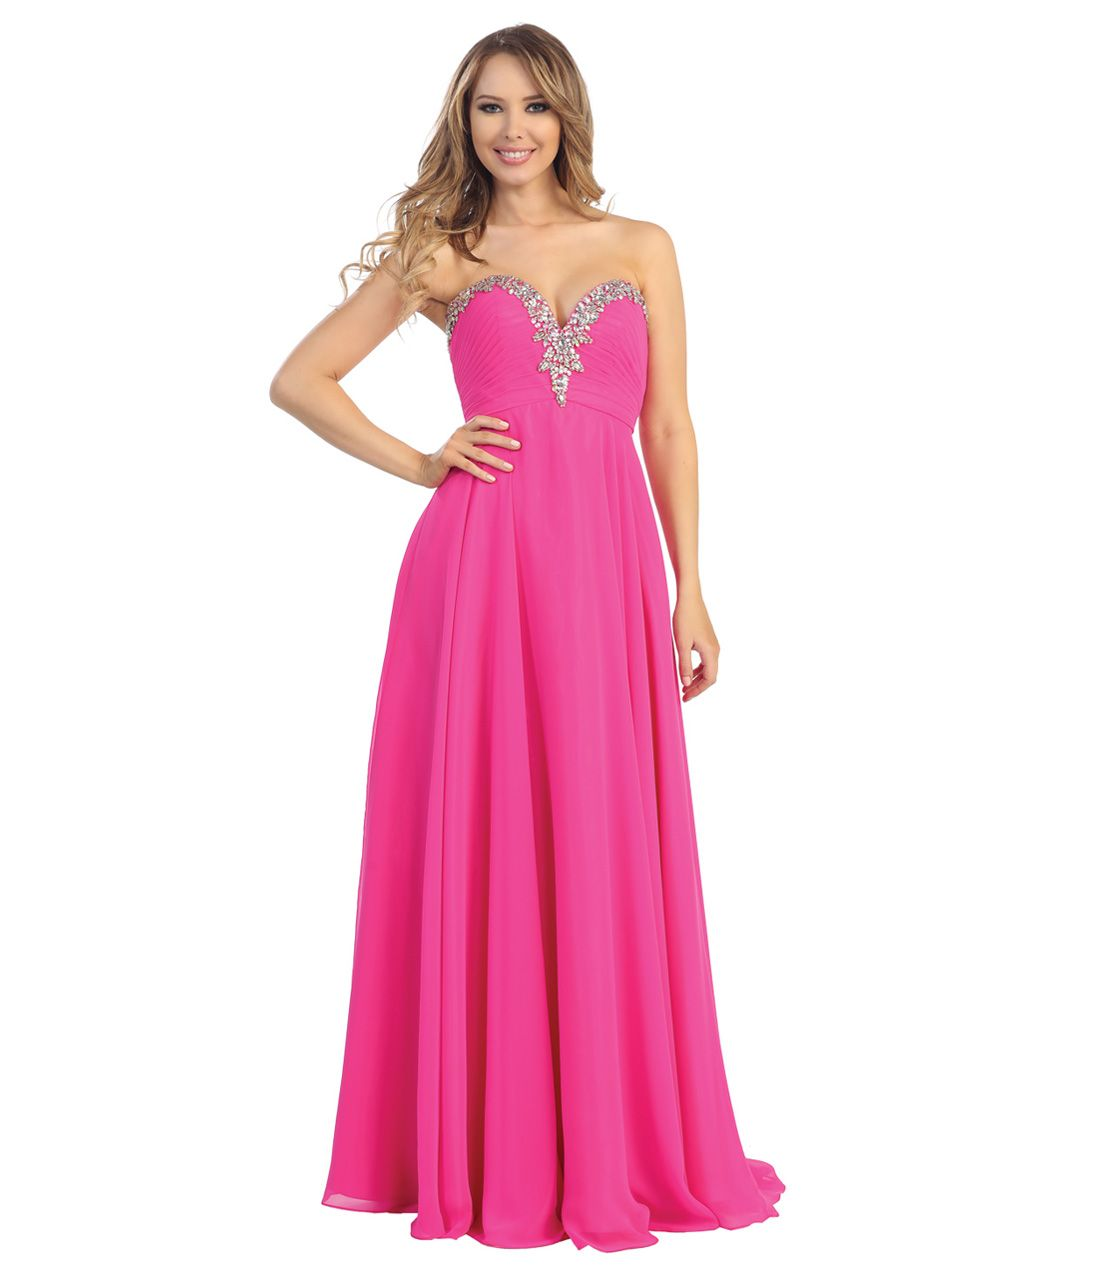 Pink Chiffon Rhinestone Beaded Strapless Sweetheart Gown [Item#40297 ...